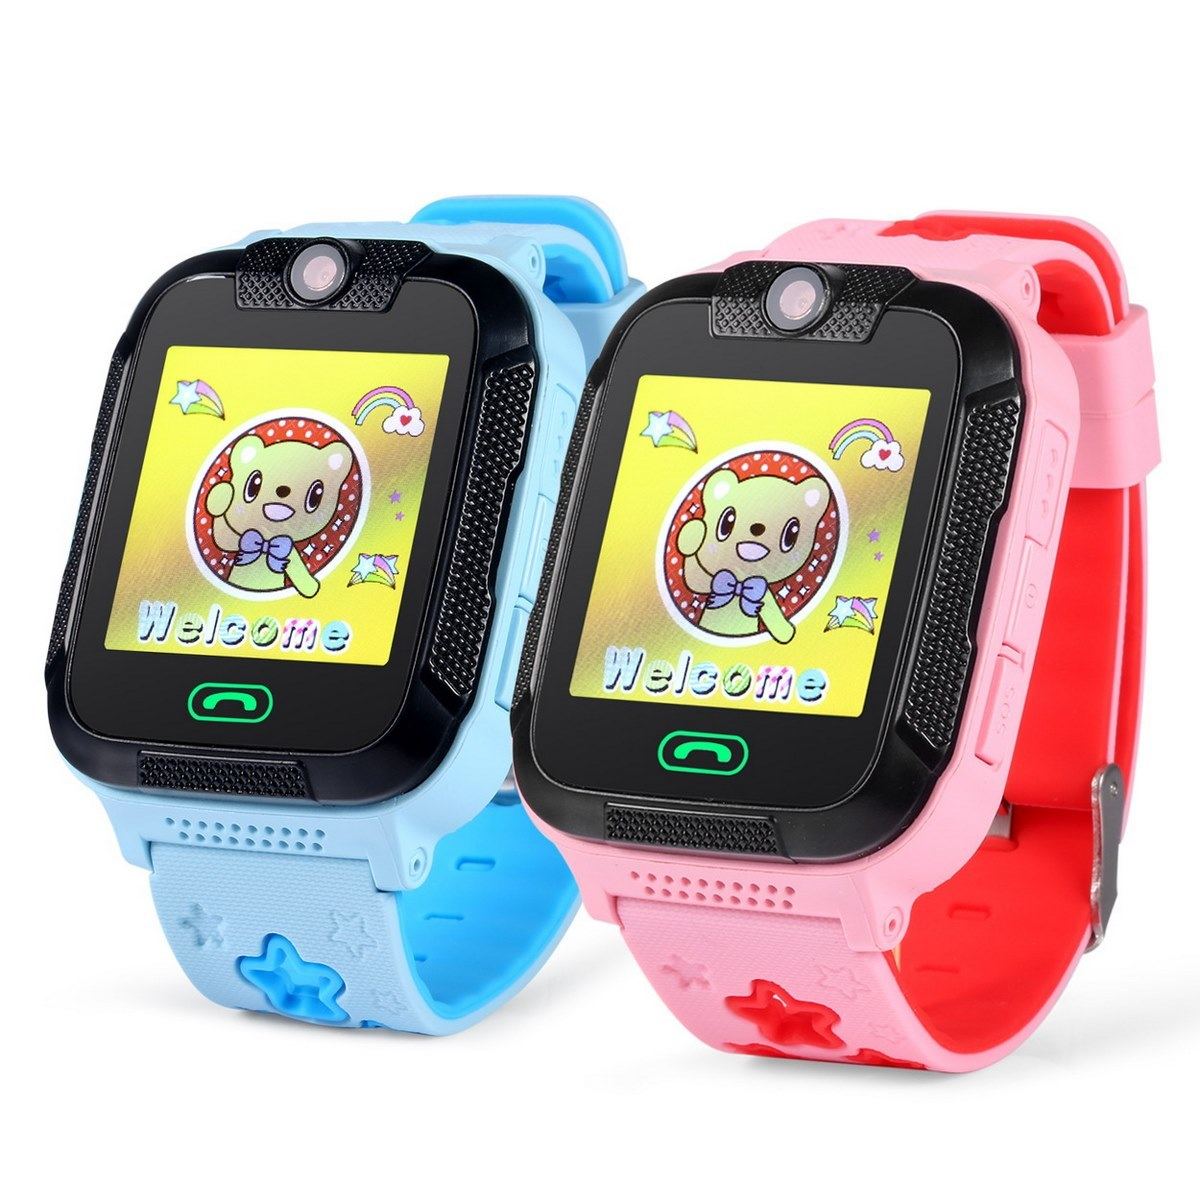 Каталог Часы GPS Smart Baby Watch GW2000 Android smart_baby_watch_gw2000_01.jpg